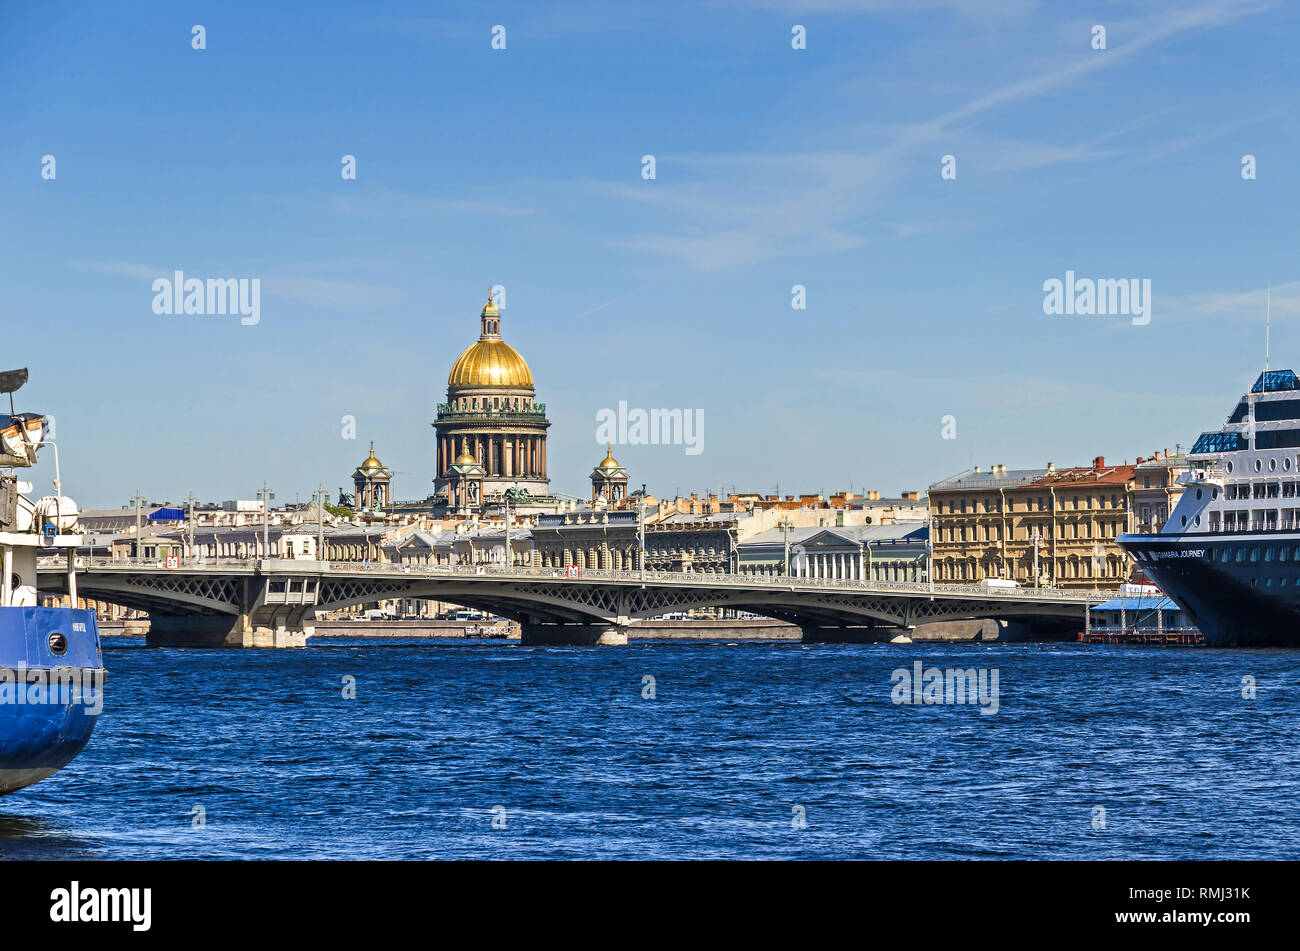 Saint Petersburg, Russia -  June 27, 2018: Saint Isaac's Cathedral behind the Blagoveshchenskiy bridge and the river Bolshaya Neva with the maritime t - Stock Image